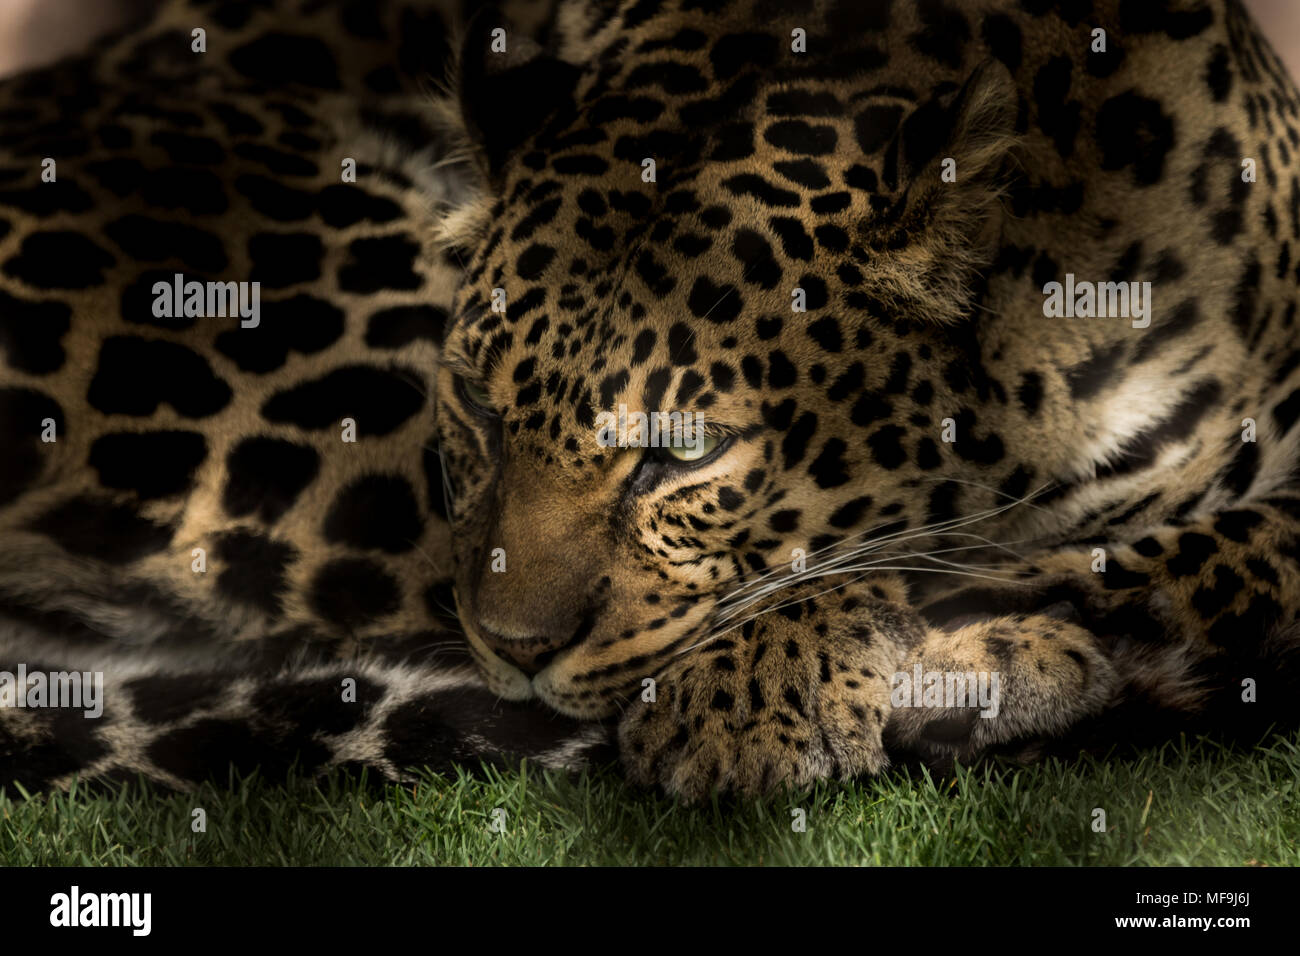 I photographed this stunning Leopard in between naps at the Mirage ...